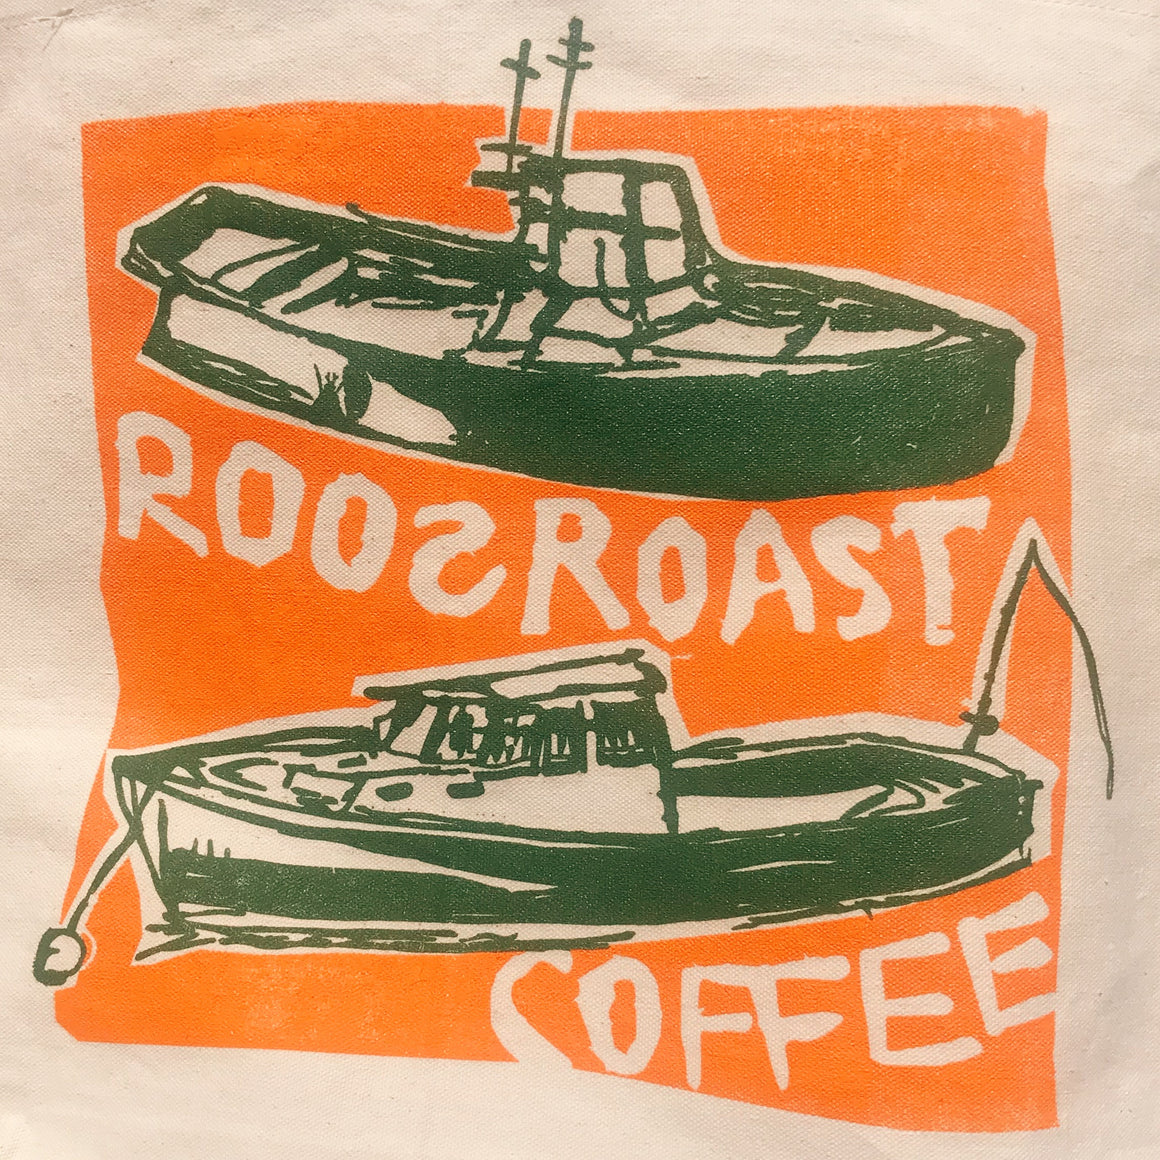 RoosRoast Tote Bag